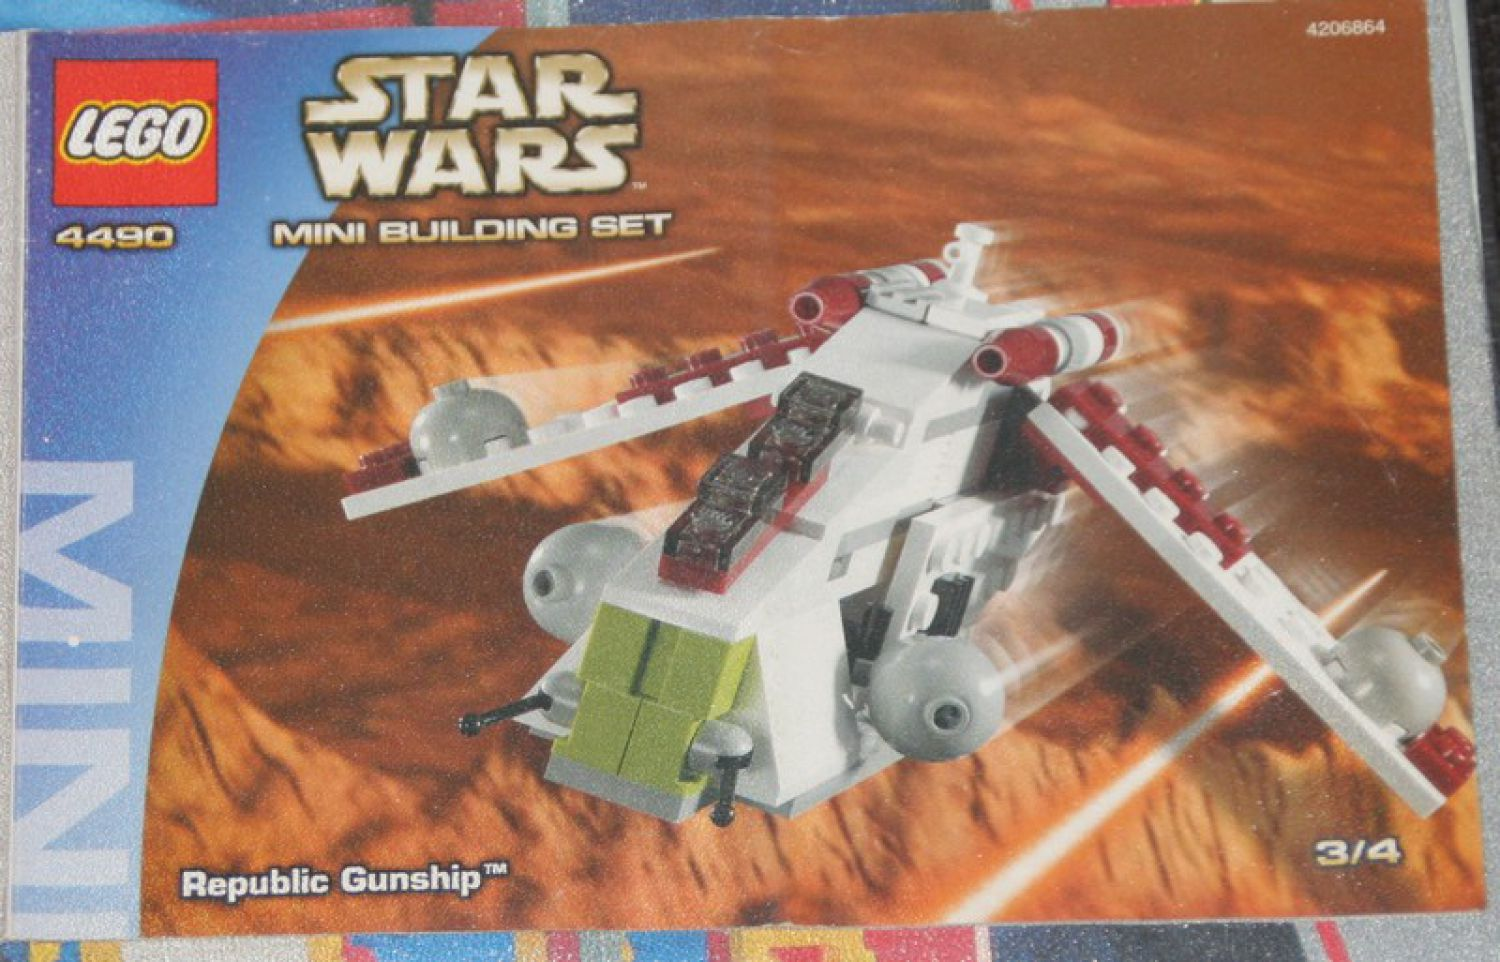 4490 lego bauanleitung star wars republic gunship top zustand ebay. Black Bedroom Furniture Sets. Home Design Ideas